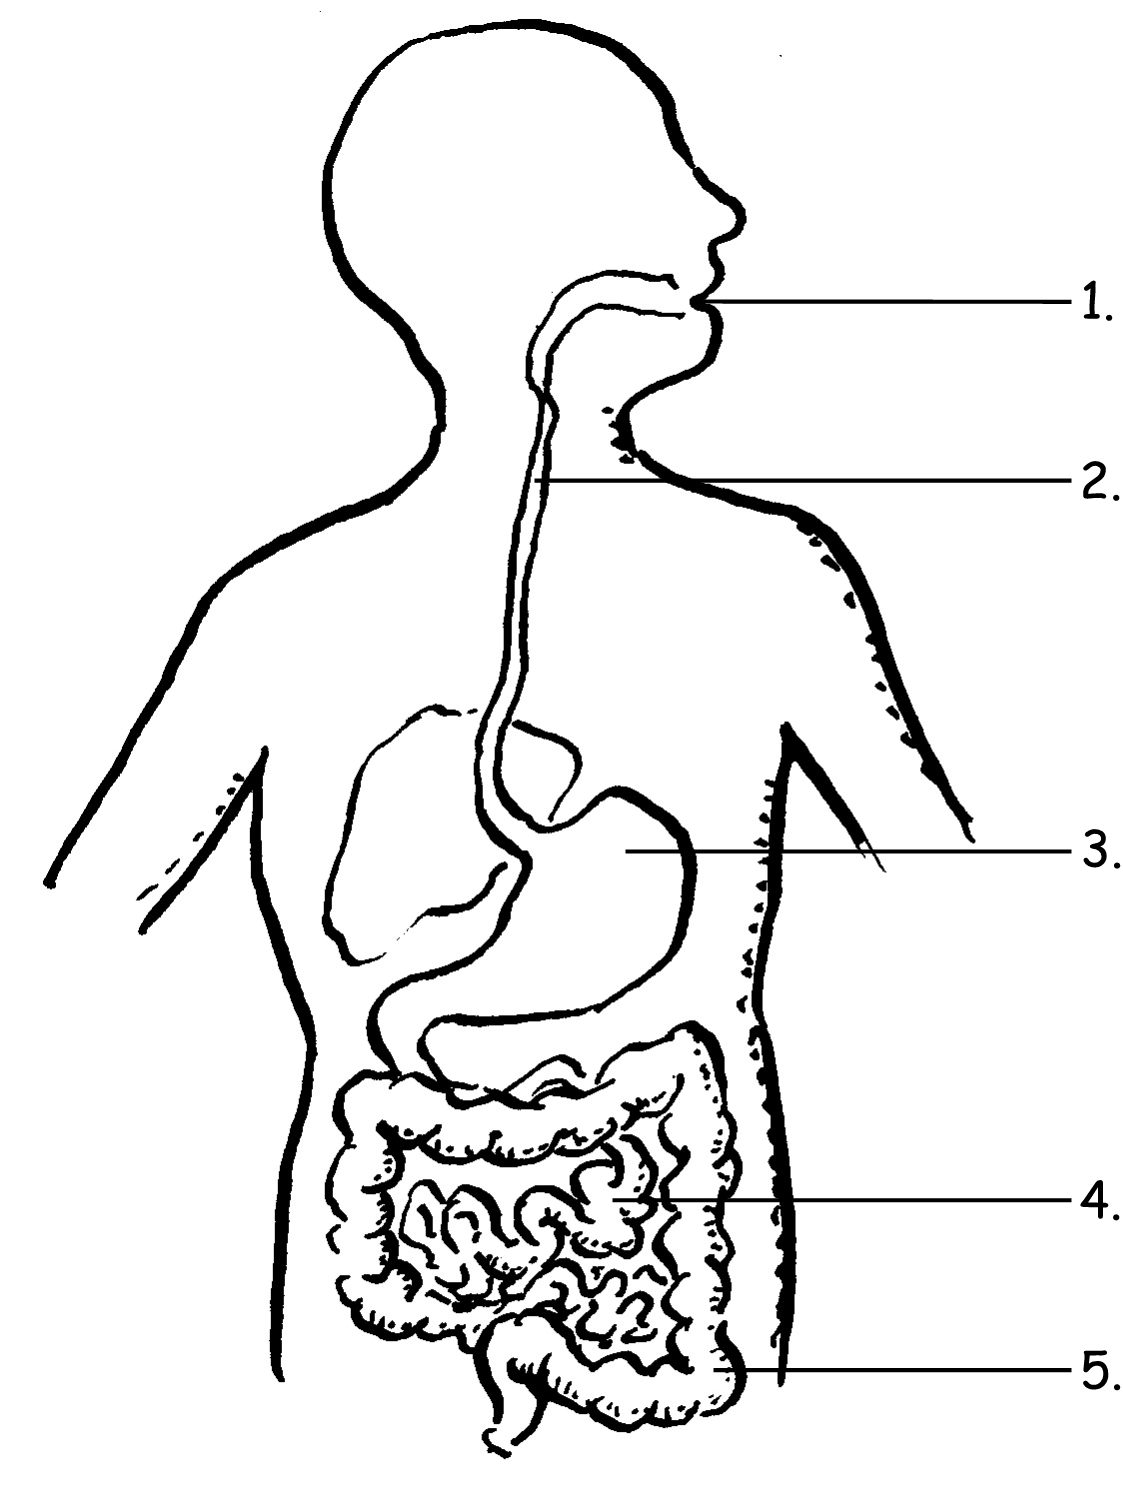 The Digestive System Lesson